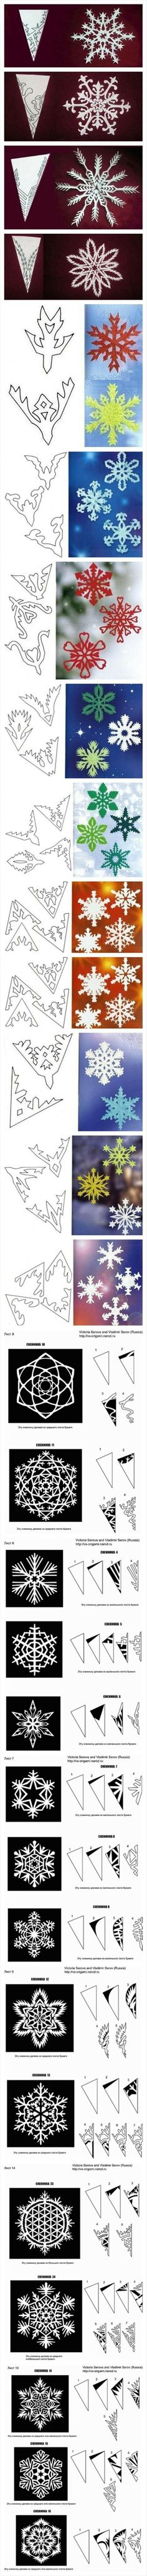 I've loved making paper snowflakes since i was a kid ... cutout snowflake patterns